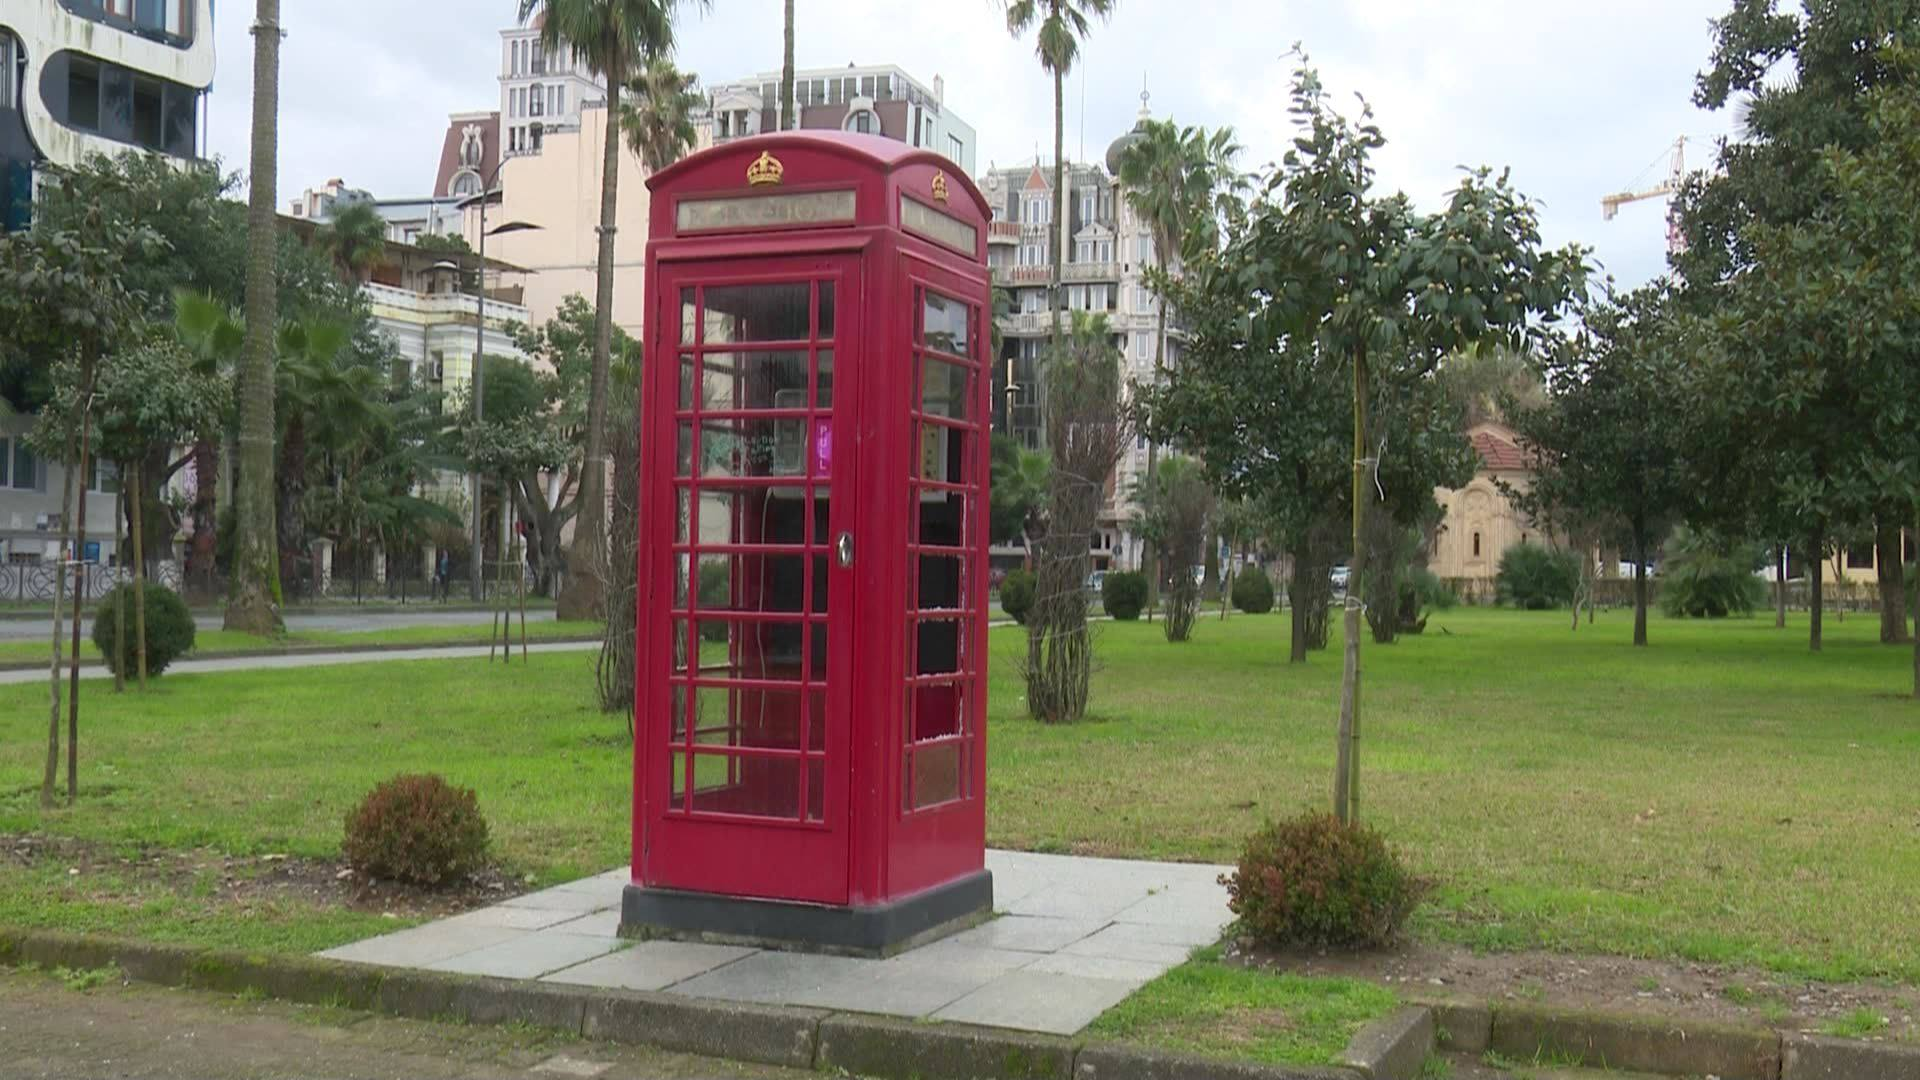 The glass windows of the London telephone booth were broken in Batumi